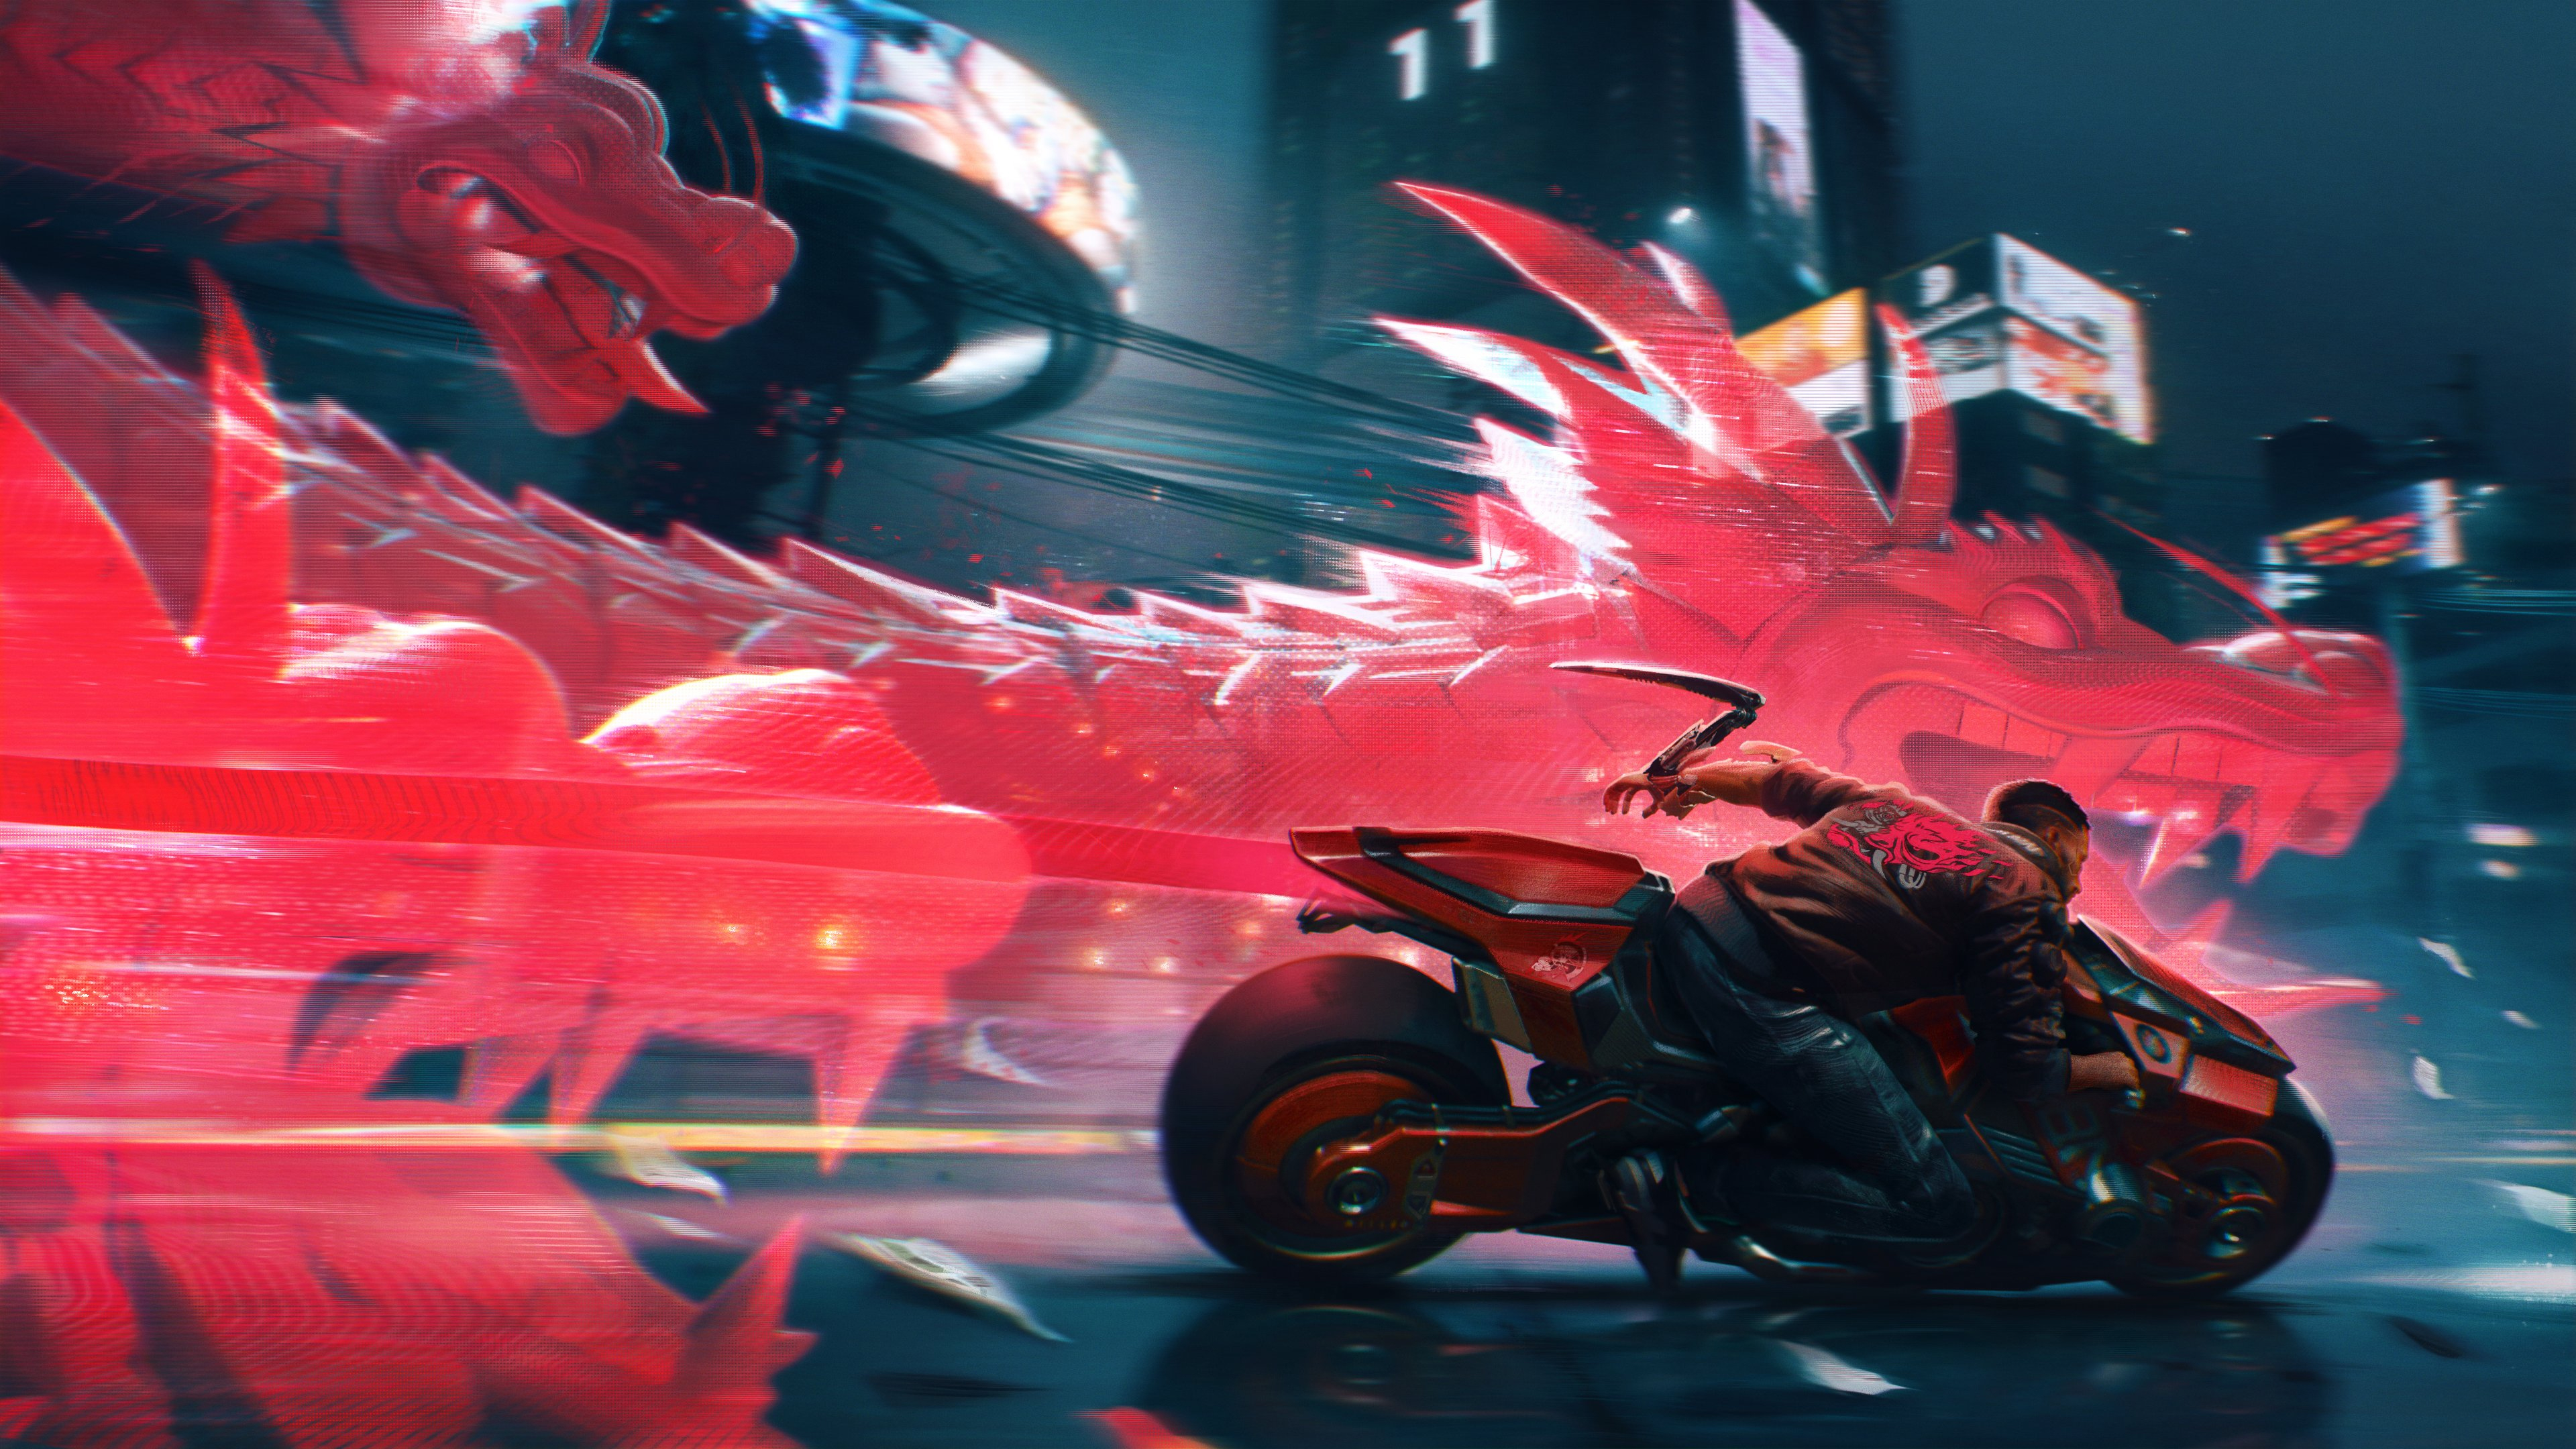 1920x1080 Cool Cyberpunk 2077 4k 2020 1080p Laptop Full Hd Wallpaper Hd Games 4k Wallpapers Images Photos And Background